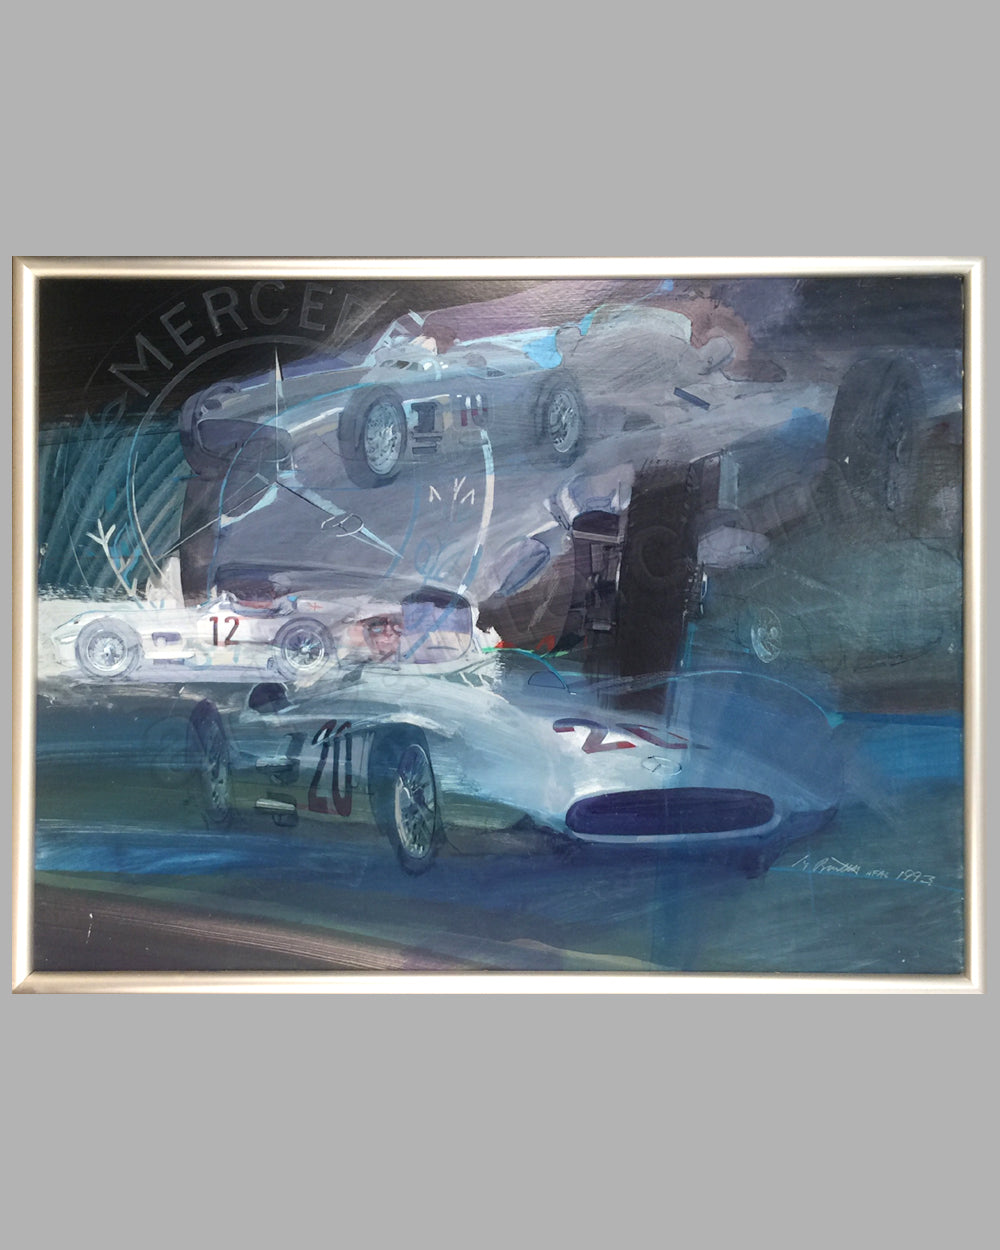 Mercedes-Benz Grand Prix Cars painting by George Bartell, 1993